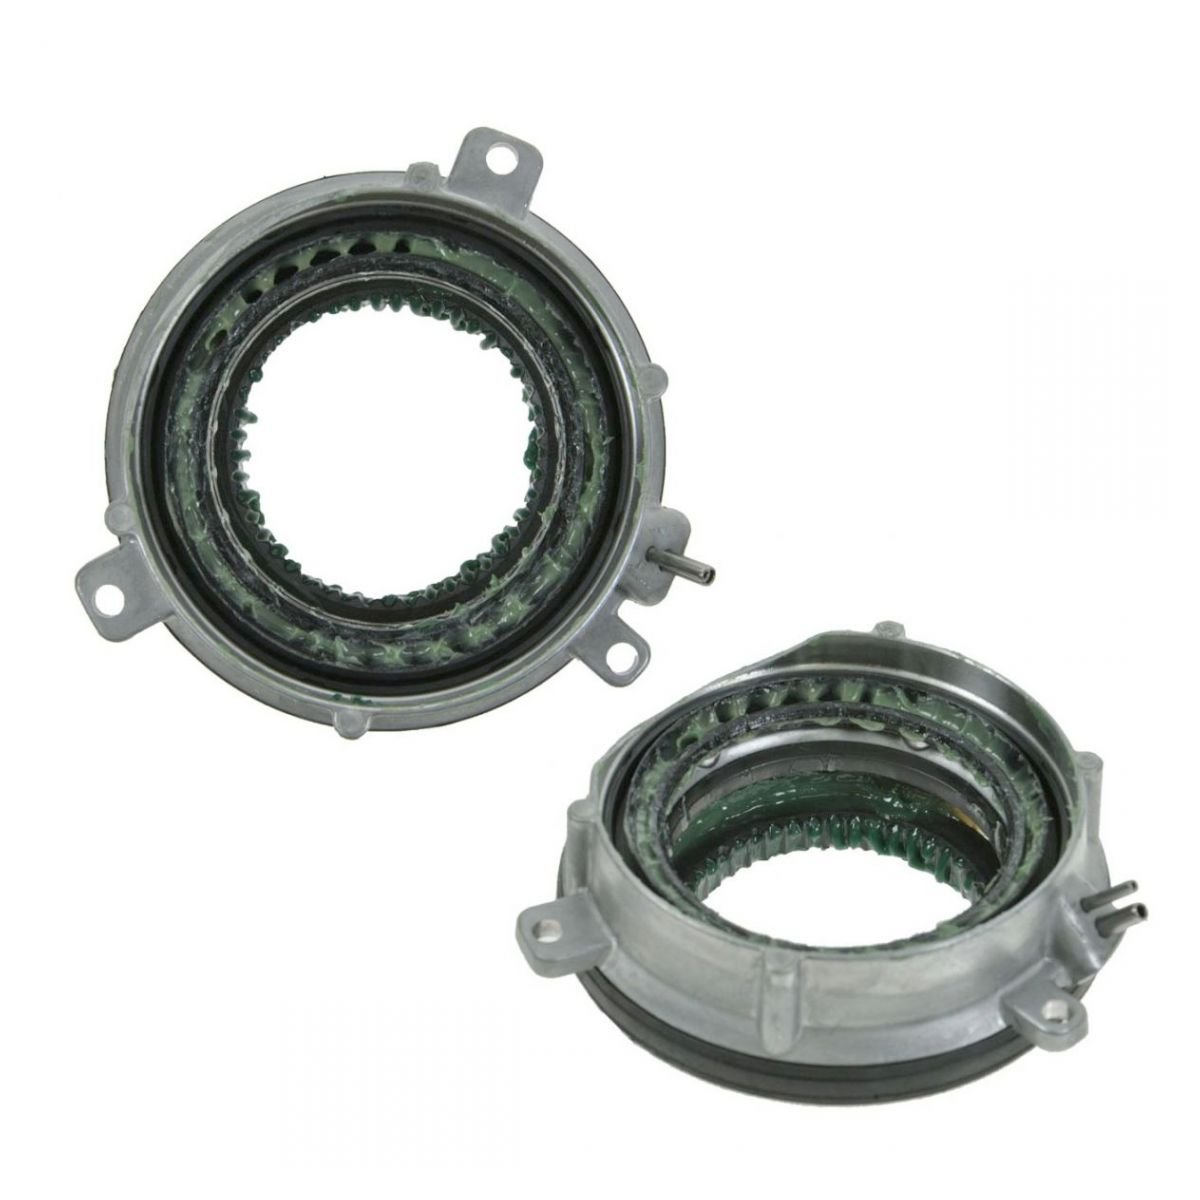 Auto-Locking Hub 4 Wheel Drive Actuator Pair for Ford F150 Expedition 4WD 4x4 by AM Autoparts